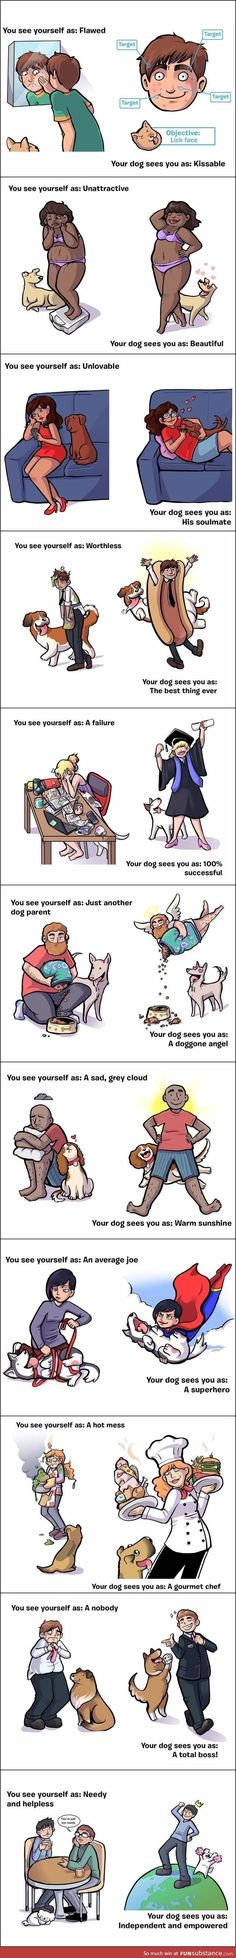 It's called unconditional love ❤️ Dog find it easy  humans, not so much!